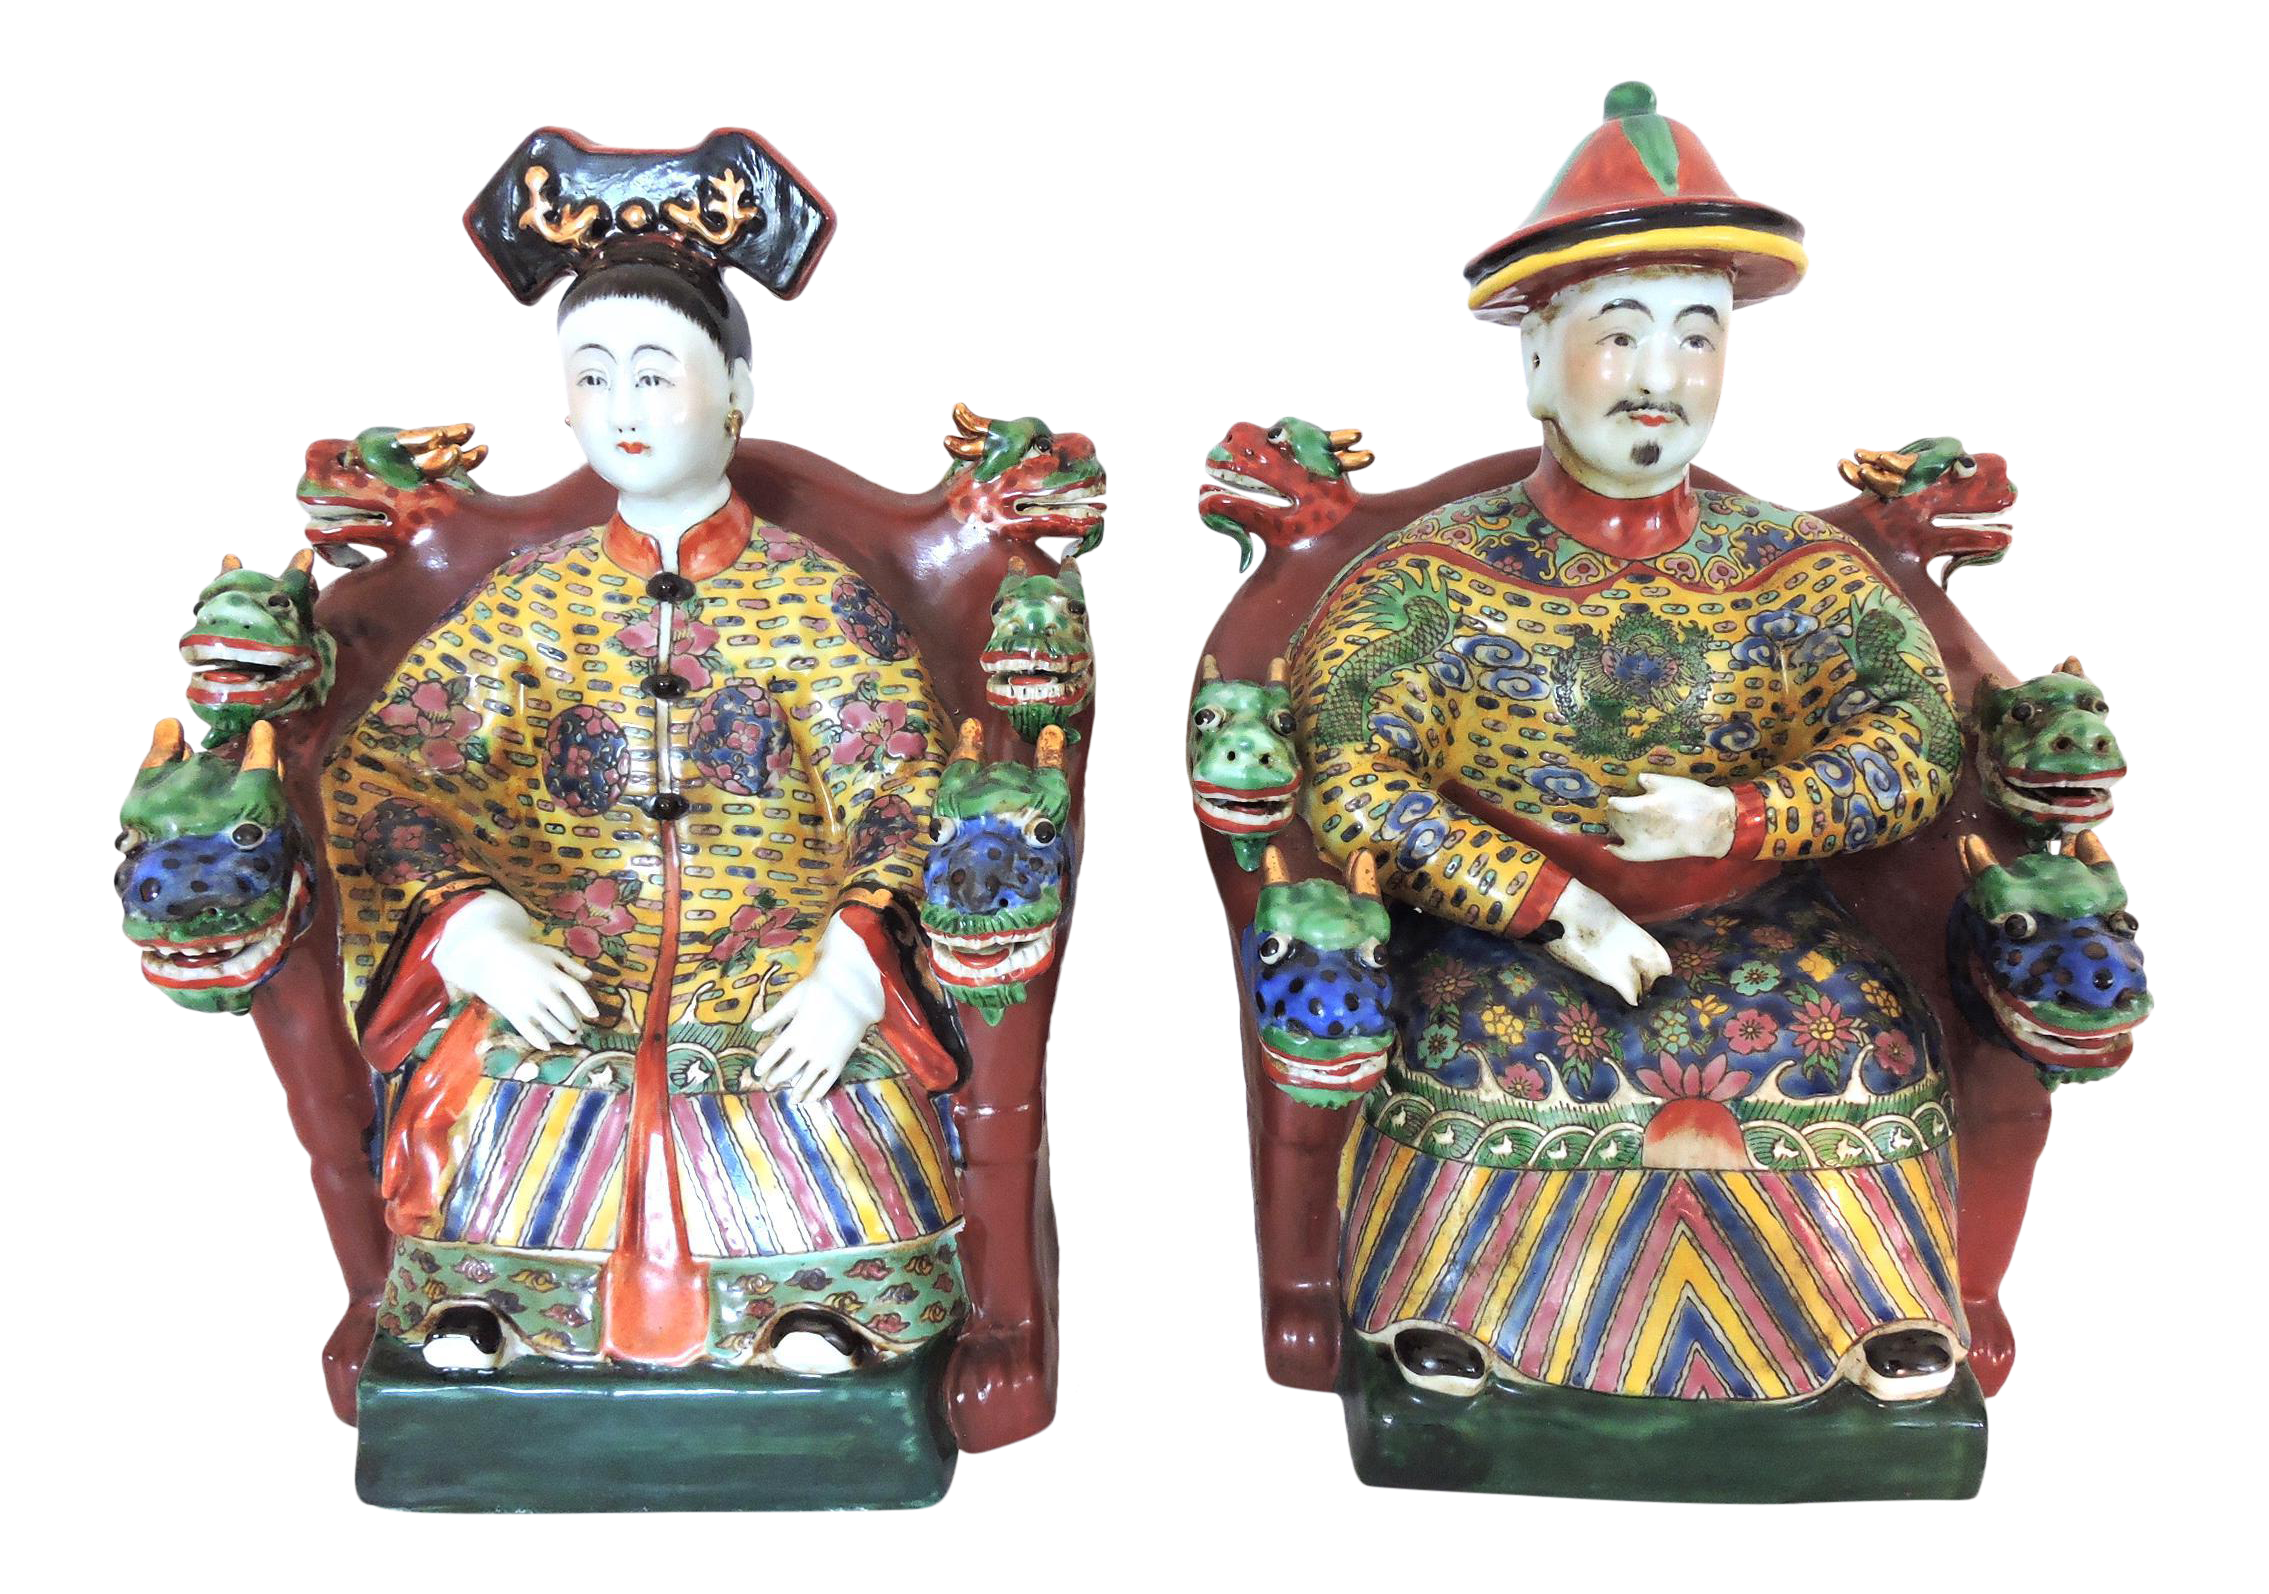 Chinese Emperor And Empress Figures A Pair On Chairish Com Please Feel Free To Contact Us About This Listing Chinese Emperor Models And Figurines Emperor